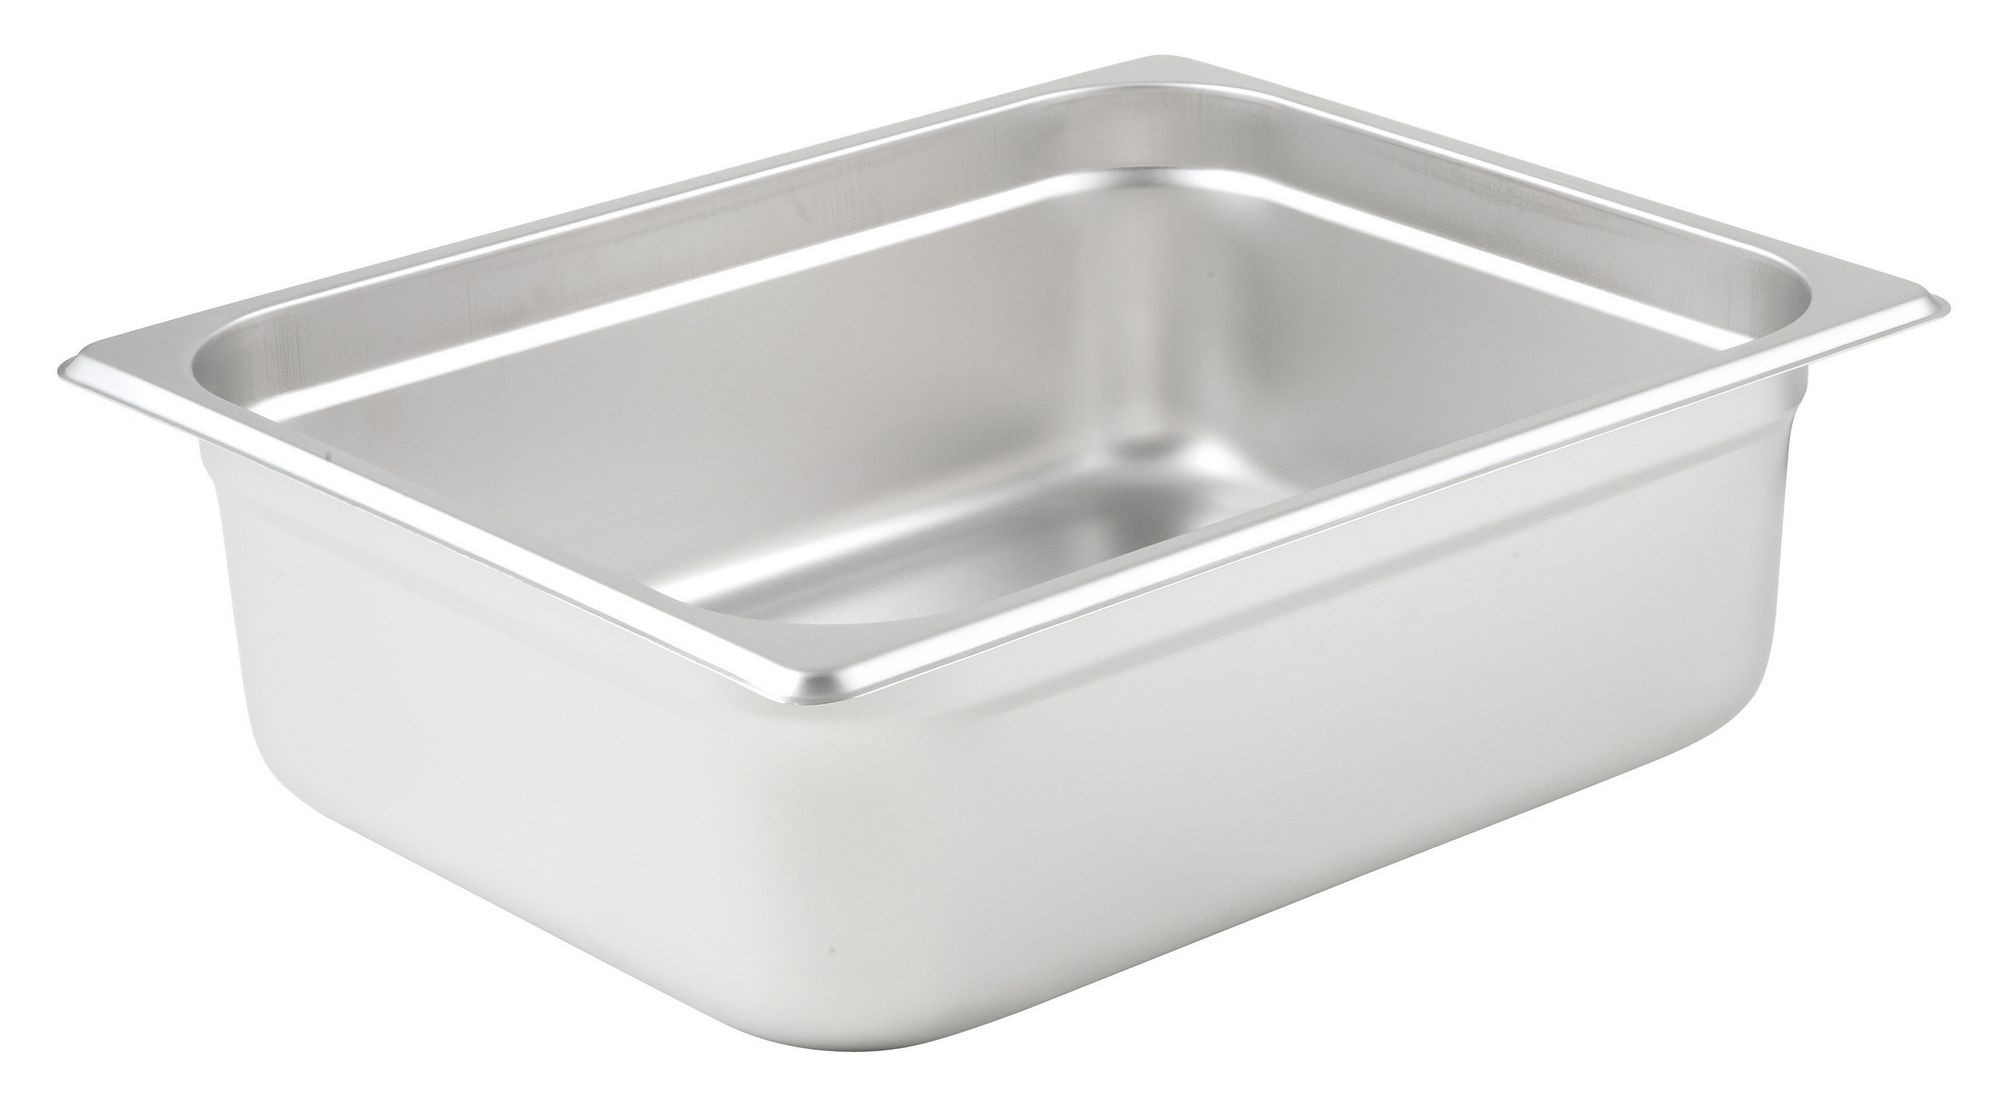 "Winco SPJL-204 1/2 Size Anti-Jam 25 Gauge Steam Table Pan 4"" Deep"